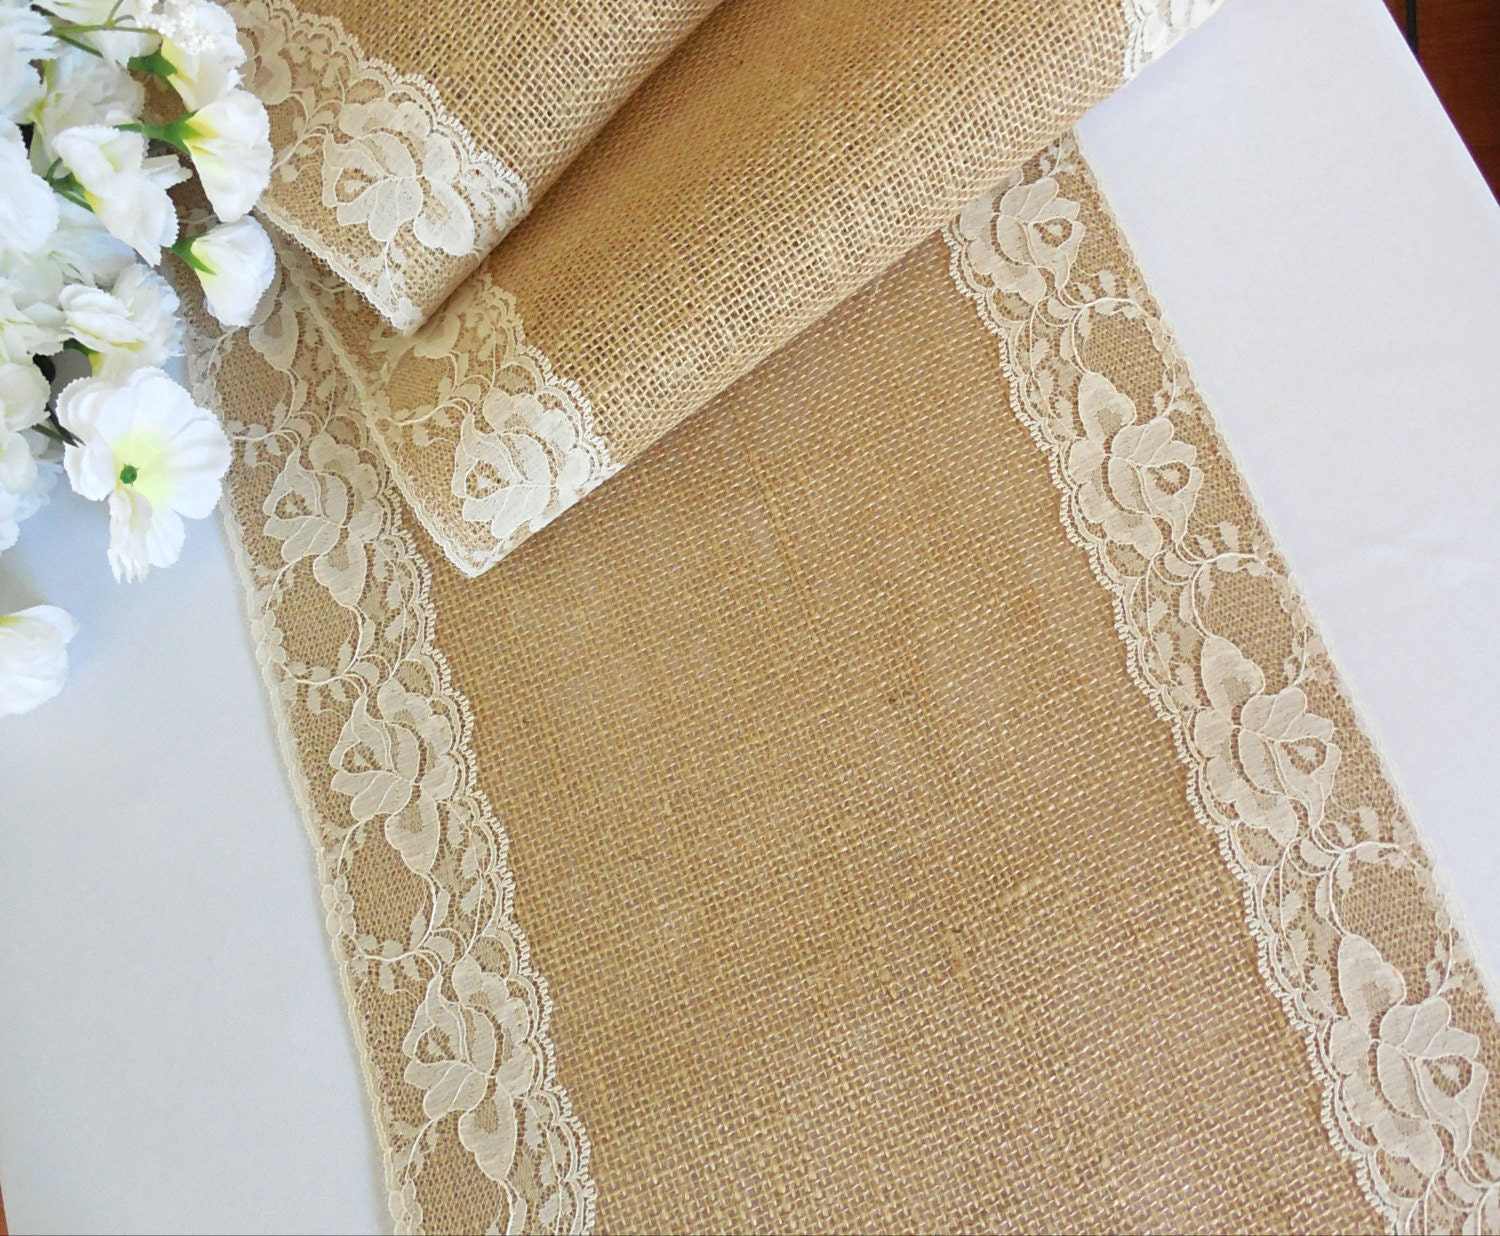 Burlap table runner with ivory lace wedding table runner